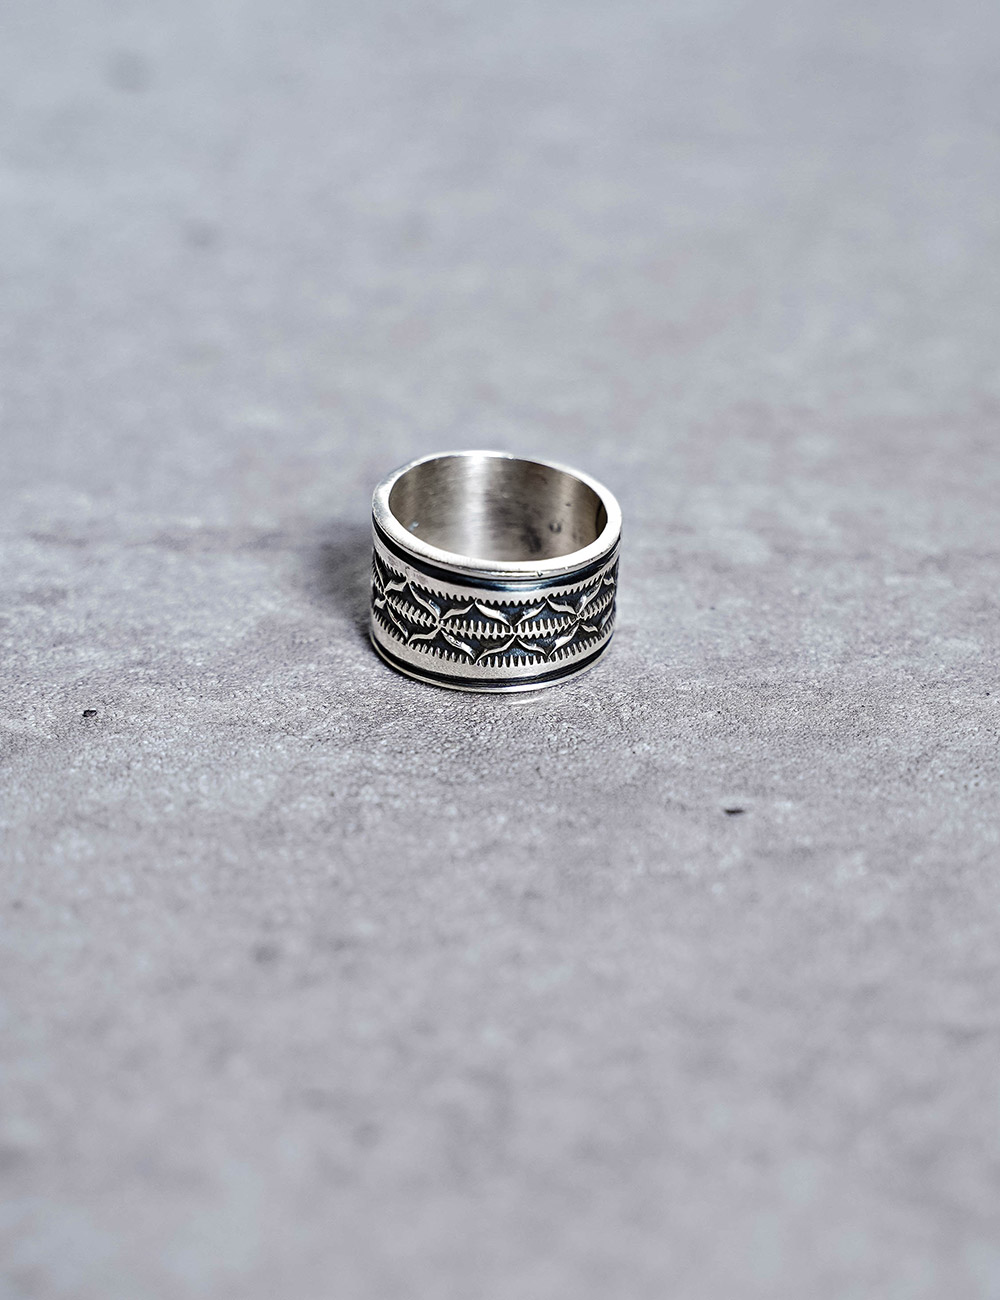 NATIVE AMERICAN JEWELRY : BO REEVES - STAMPED STERLING SILVER RING